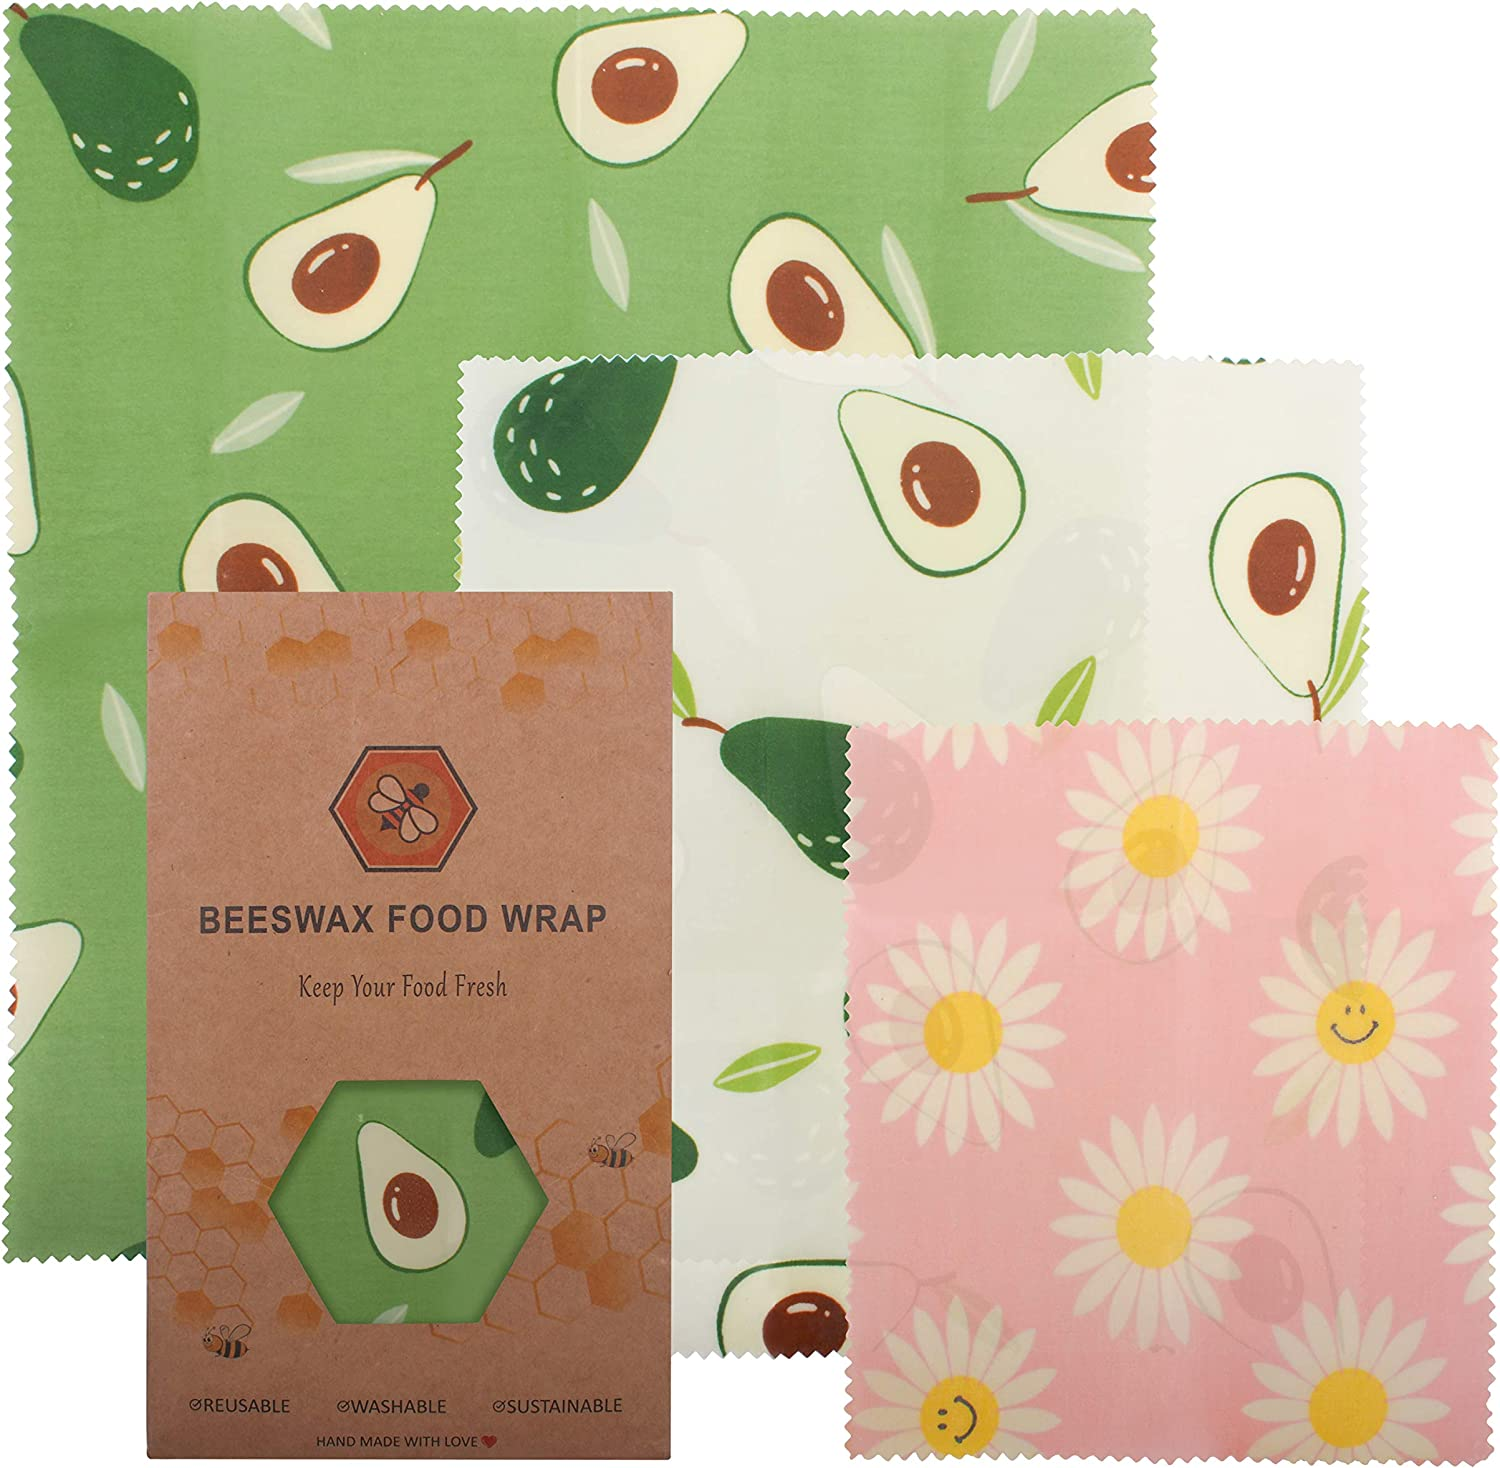 Beeswax Food Wraps 3-Pack Reusable Food Wrap Organic Cotton Handmade Plastic Free Storage - Safe, Sustainable Zero Waste for Lunch, Snacks, Leftovers - Small/Medium/Large